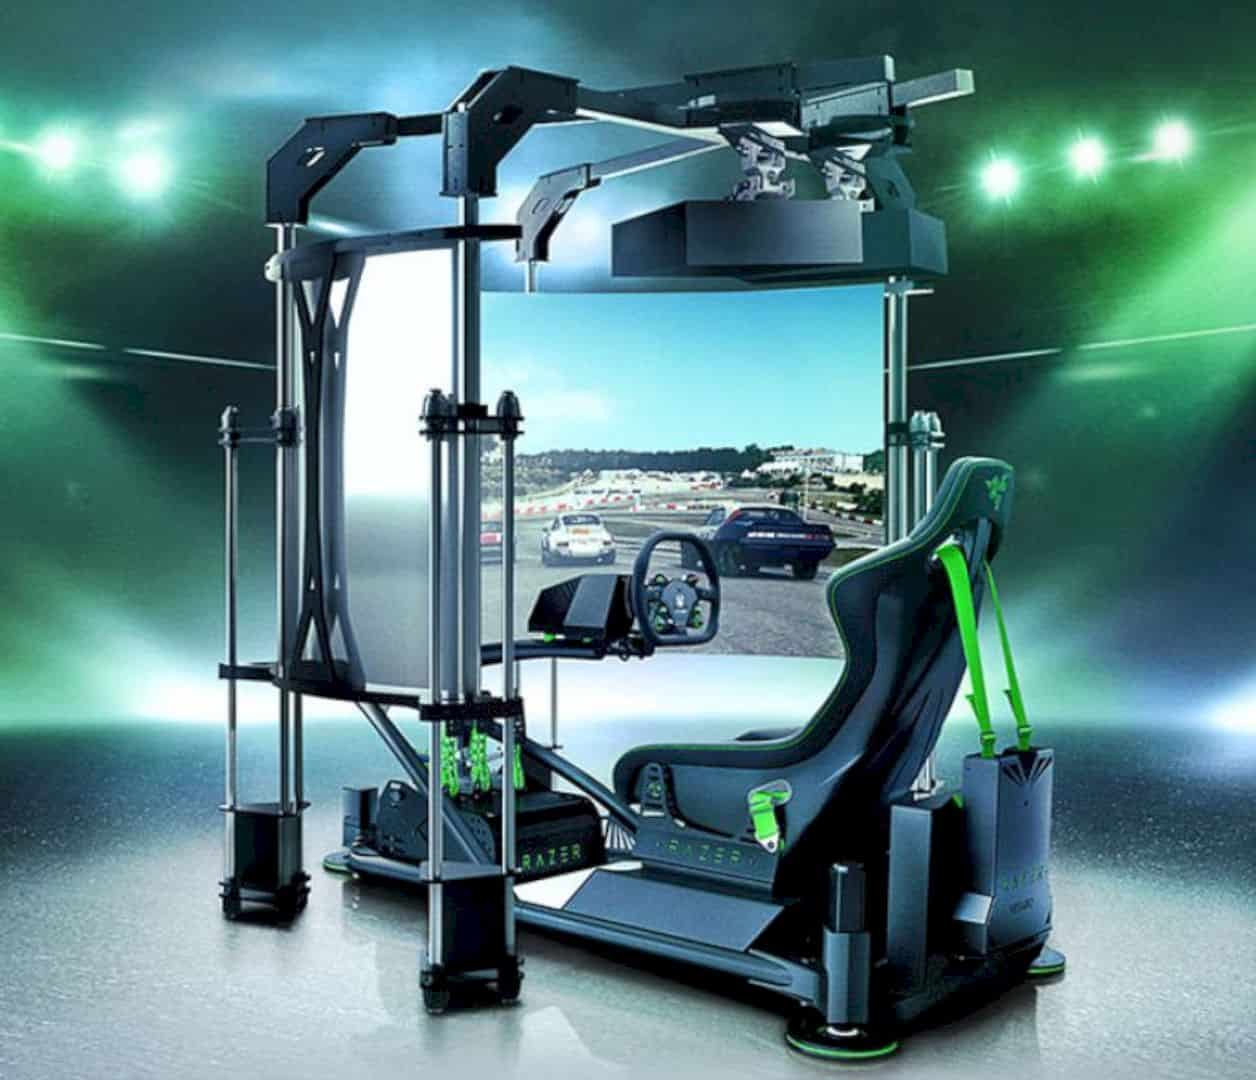 Razer Ultimate Racing Simulator 3